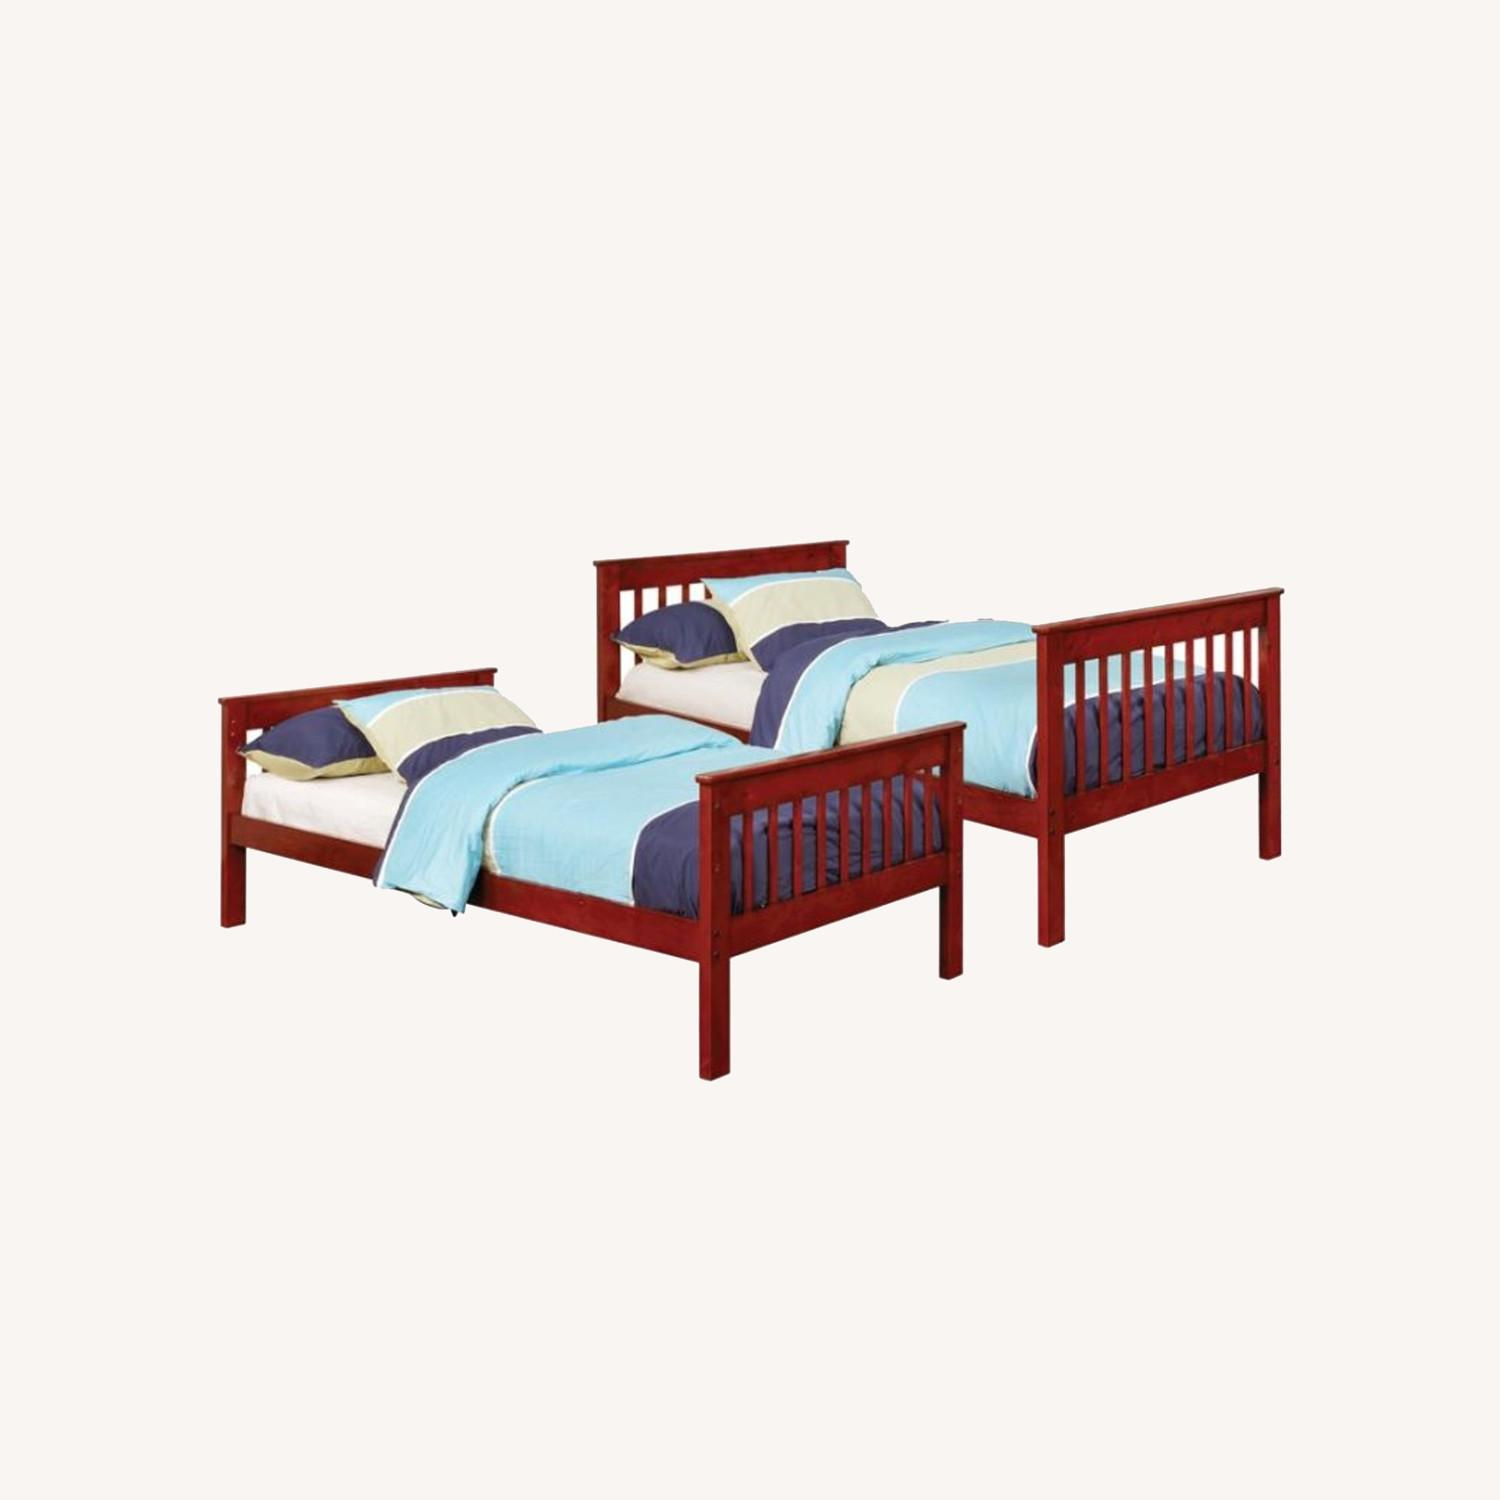 Bunk Bed In Chestnut W/ Slatted Head & Footboards - image-3